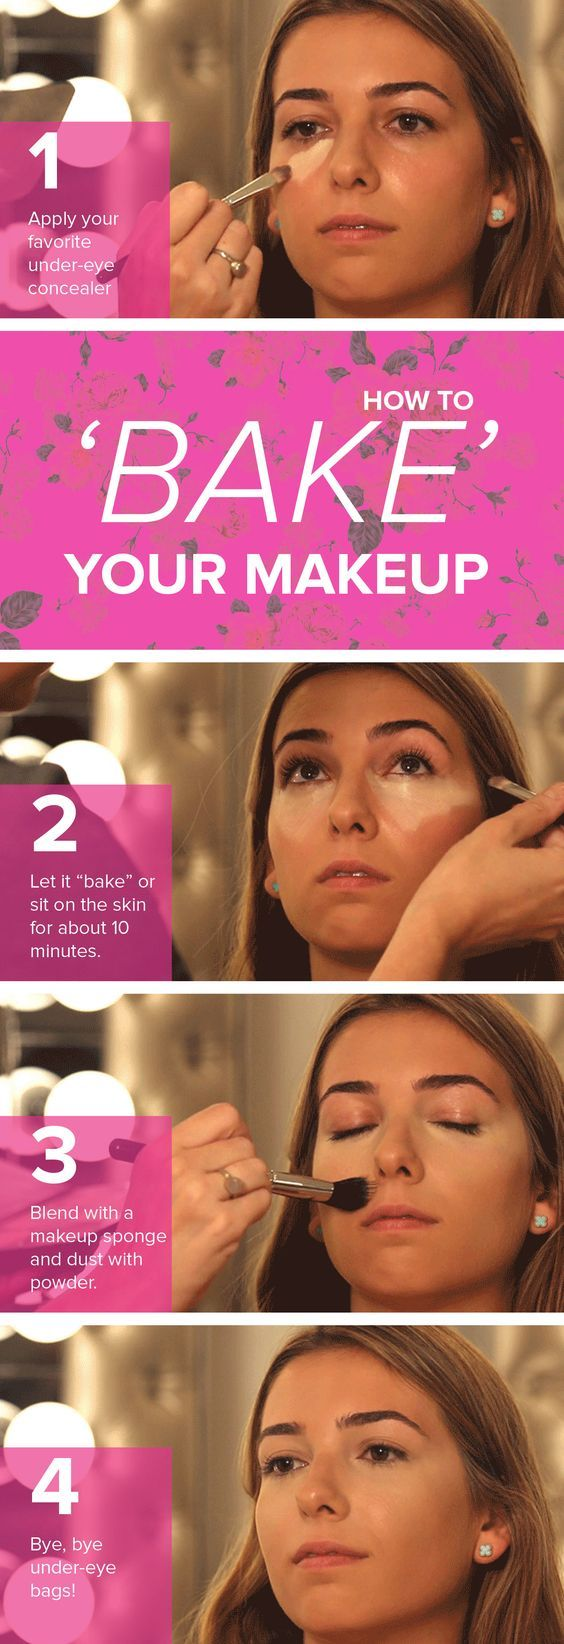 Make your face glow and ensure your look lasts all day with this trendy techniqu...